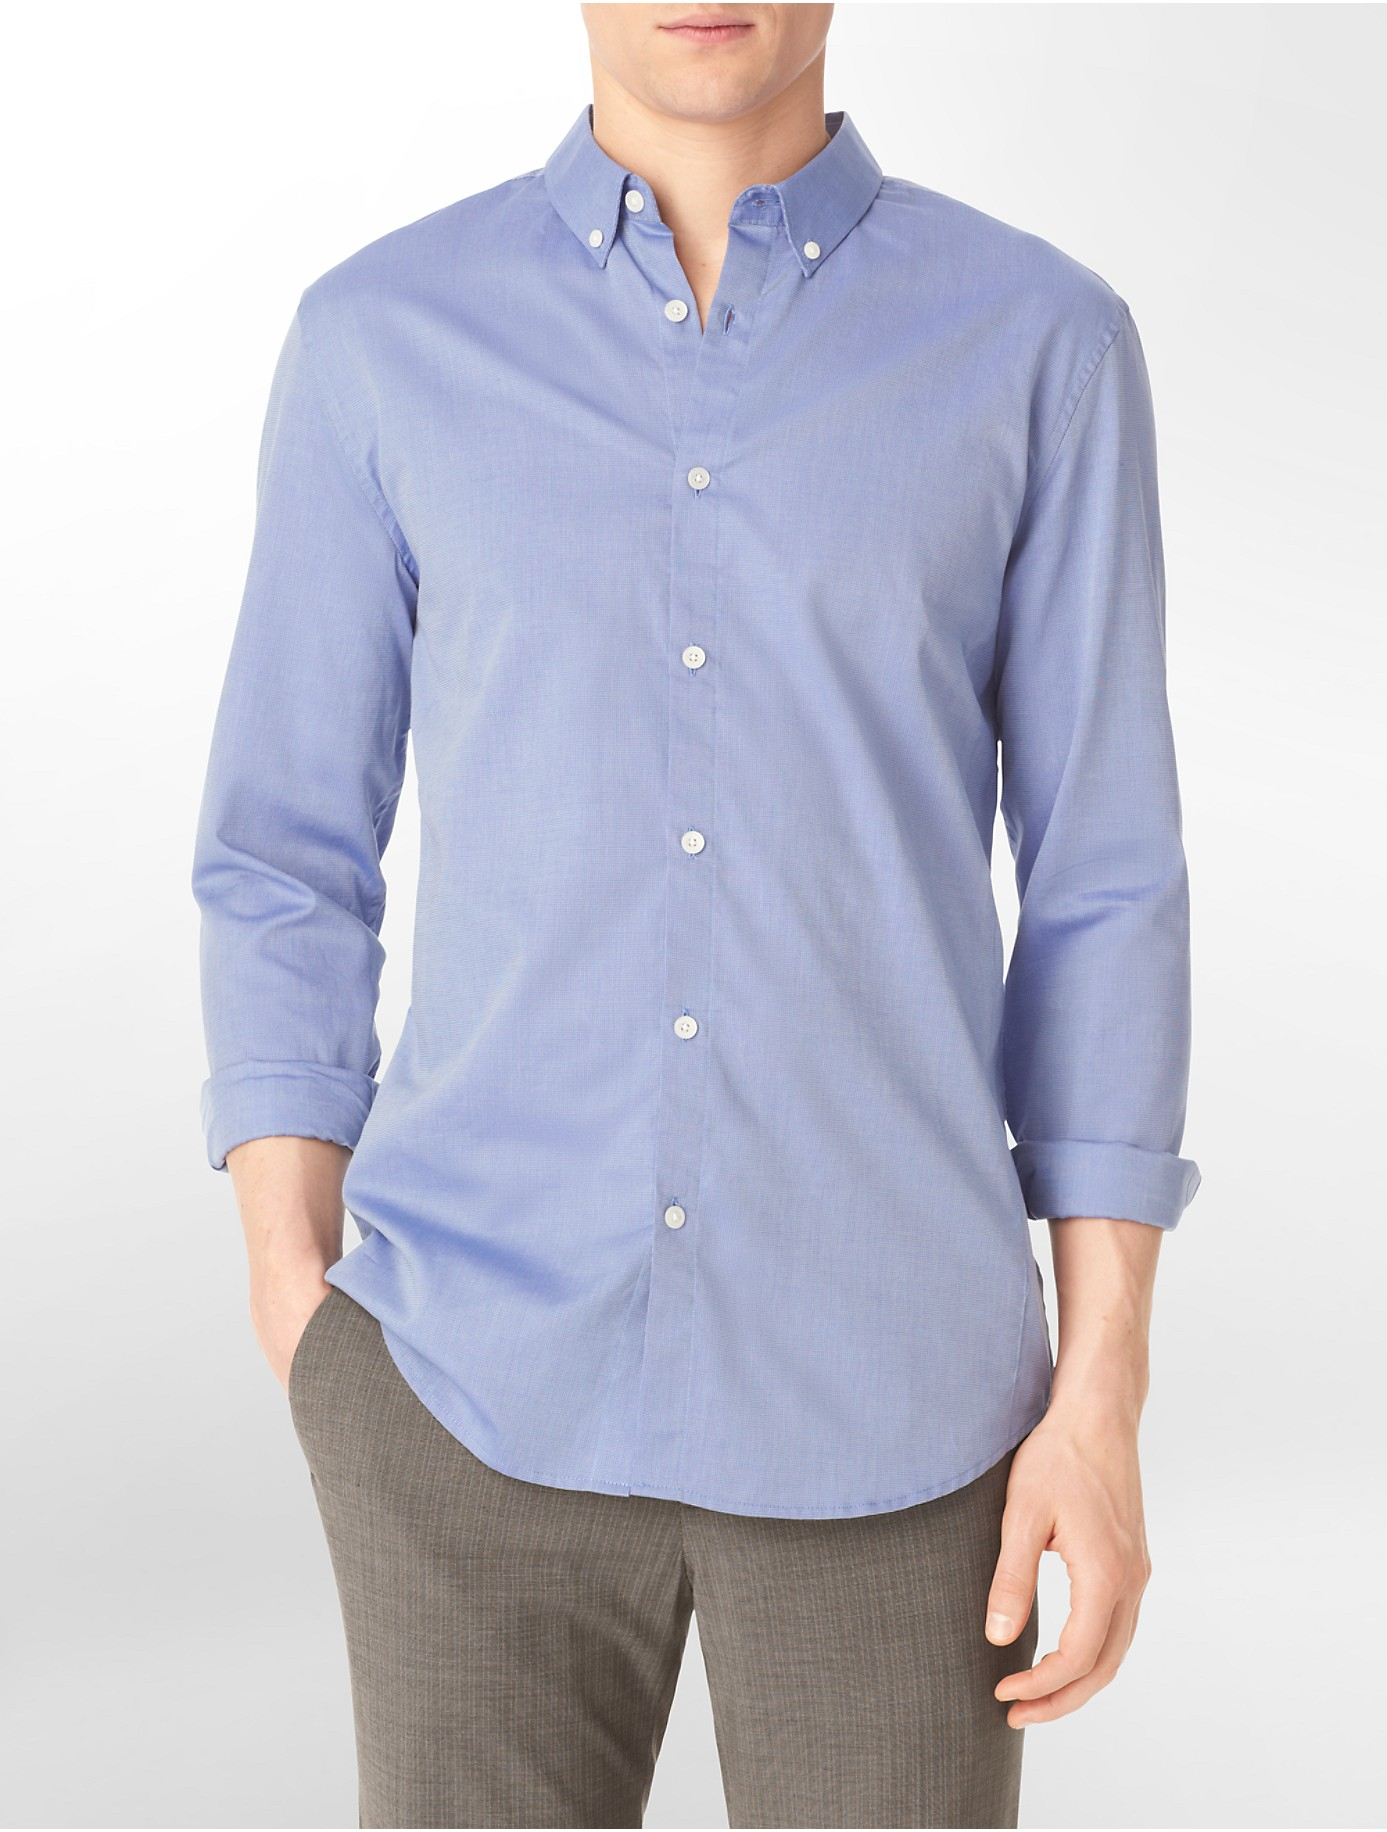 88780ee4835 Lyst - Calvin Klein Body Slim Fit Micro Dobby Roll-up Sleeve Shirt ...